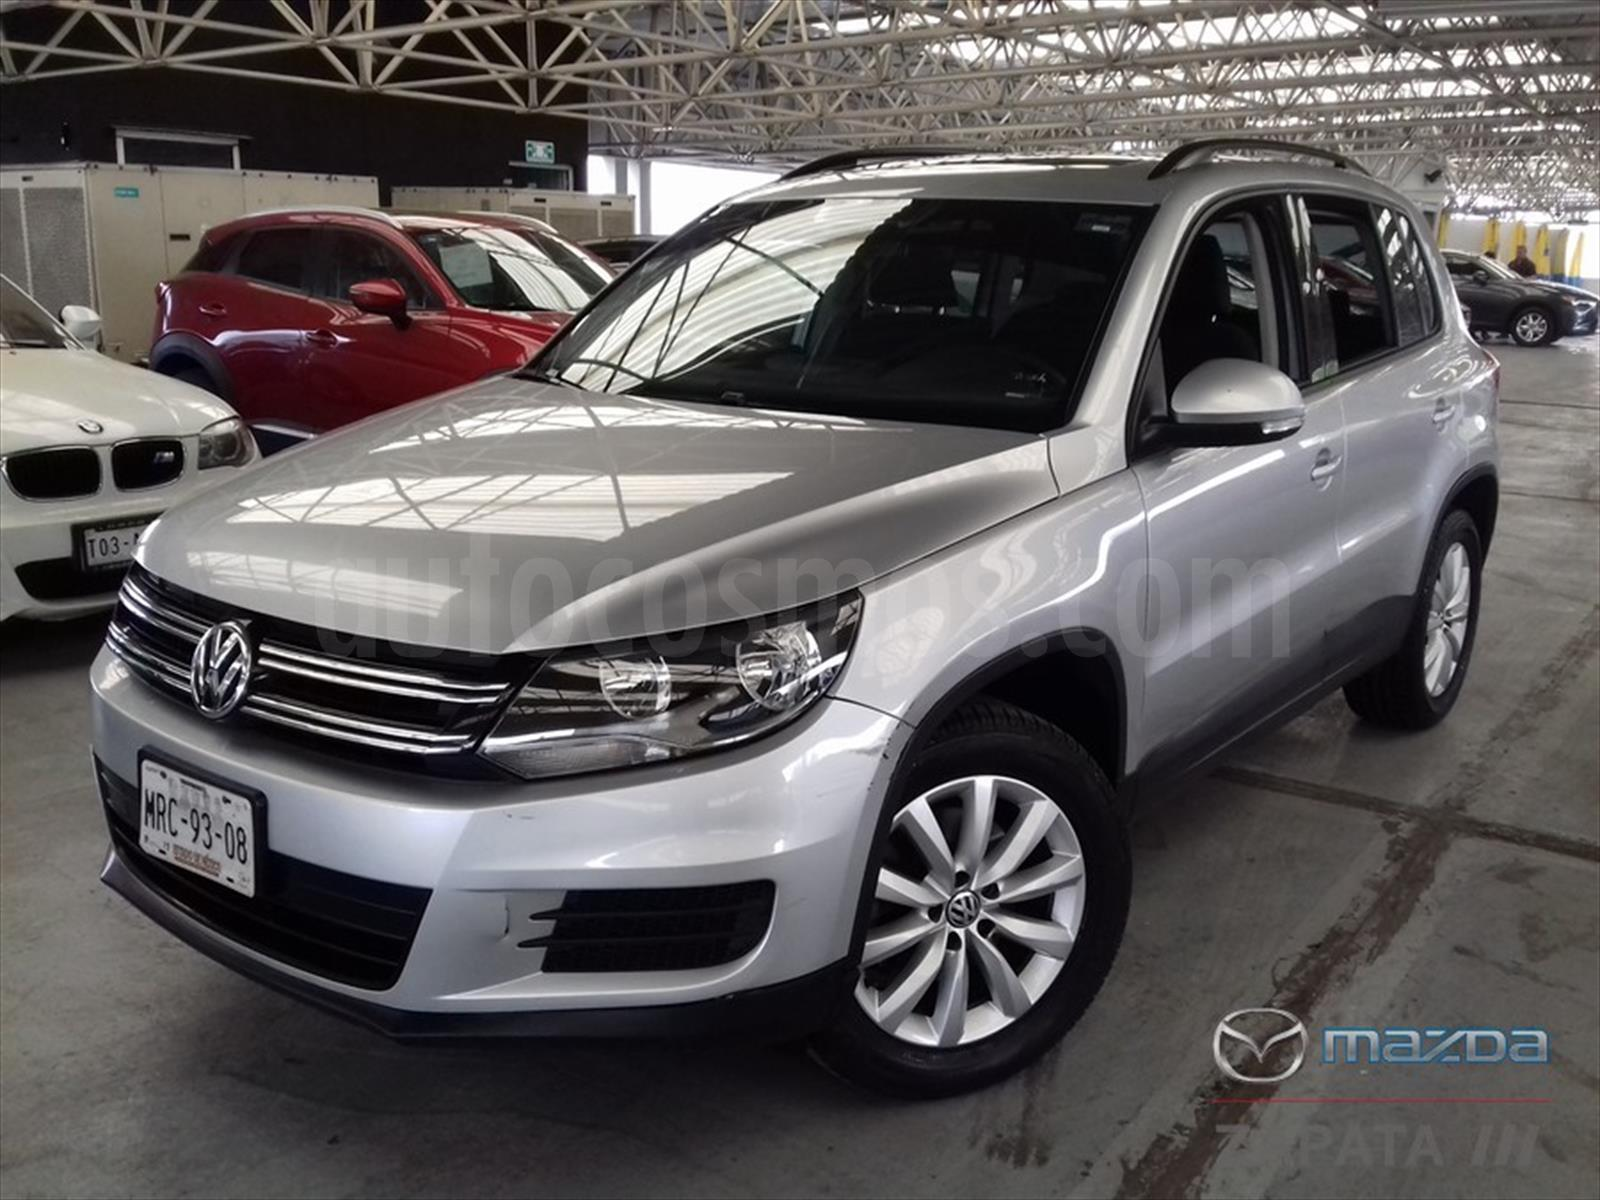 venta autos usado estado de mexico volkswagen tiguan. Black Bedroom Furniture Sets. Home Design Ideas